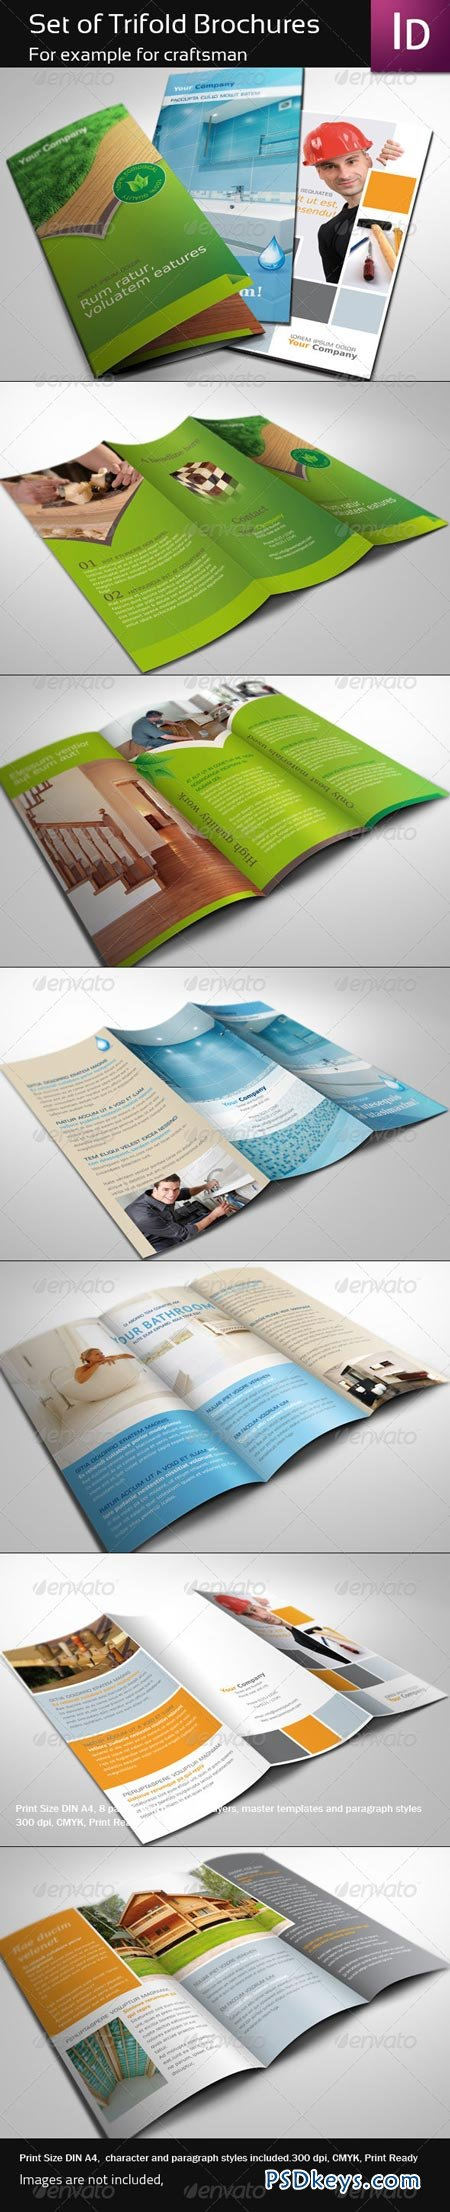 Set of Trifold Brochure 337187